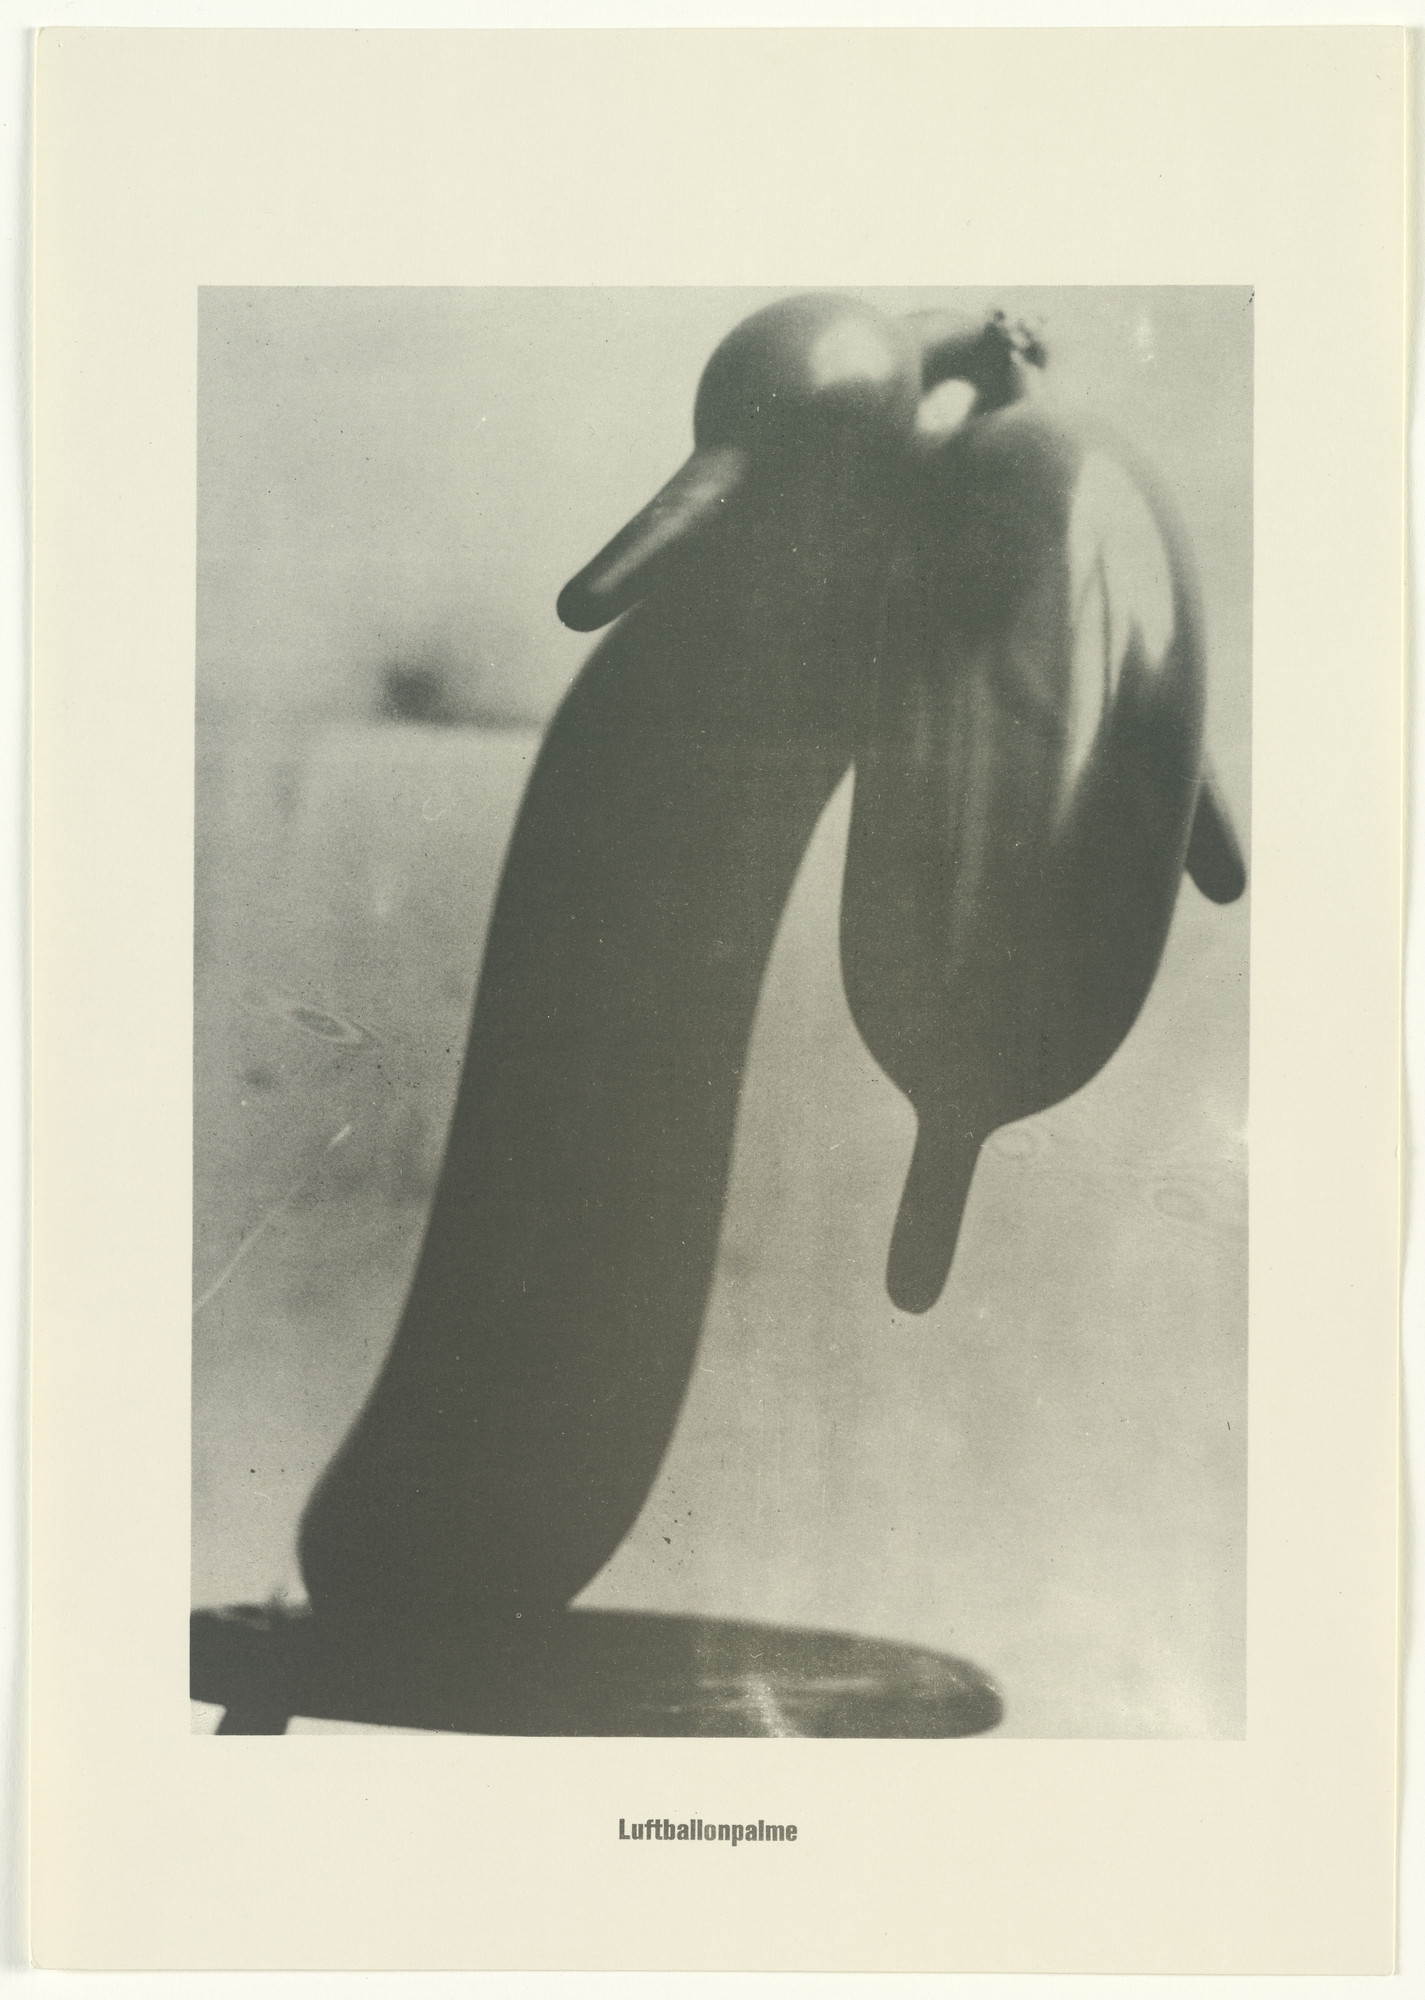 Sigmar Polke, Christof  Kohlhöfer. Balloon Palm Tree (Luftbalonpalme) from the Palm Tree Series (Palmenserie) from .....Higher Beings Ordain (.....Höhere Wesen befehlen). 1966, published 1968